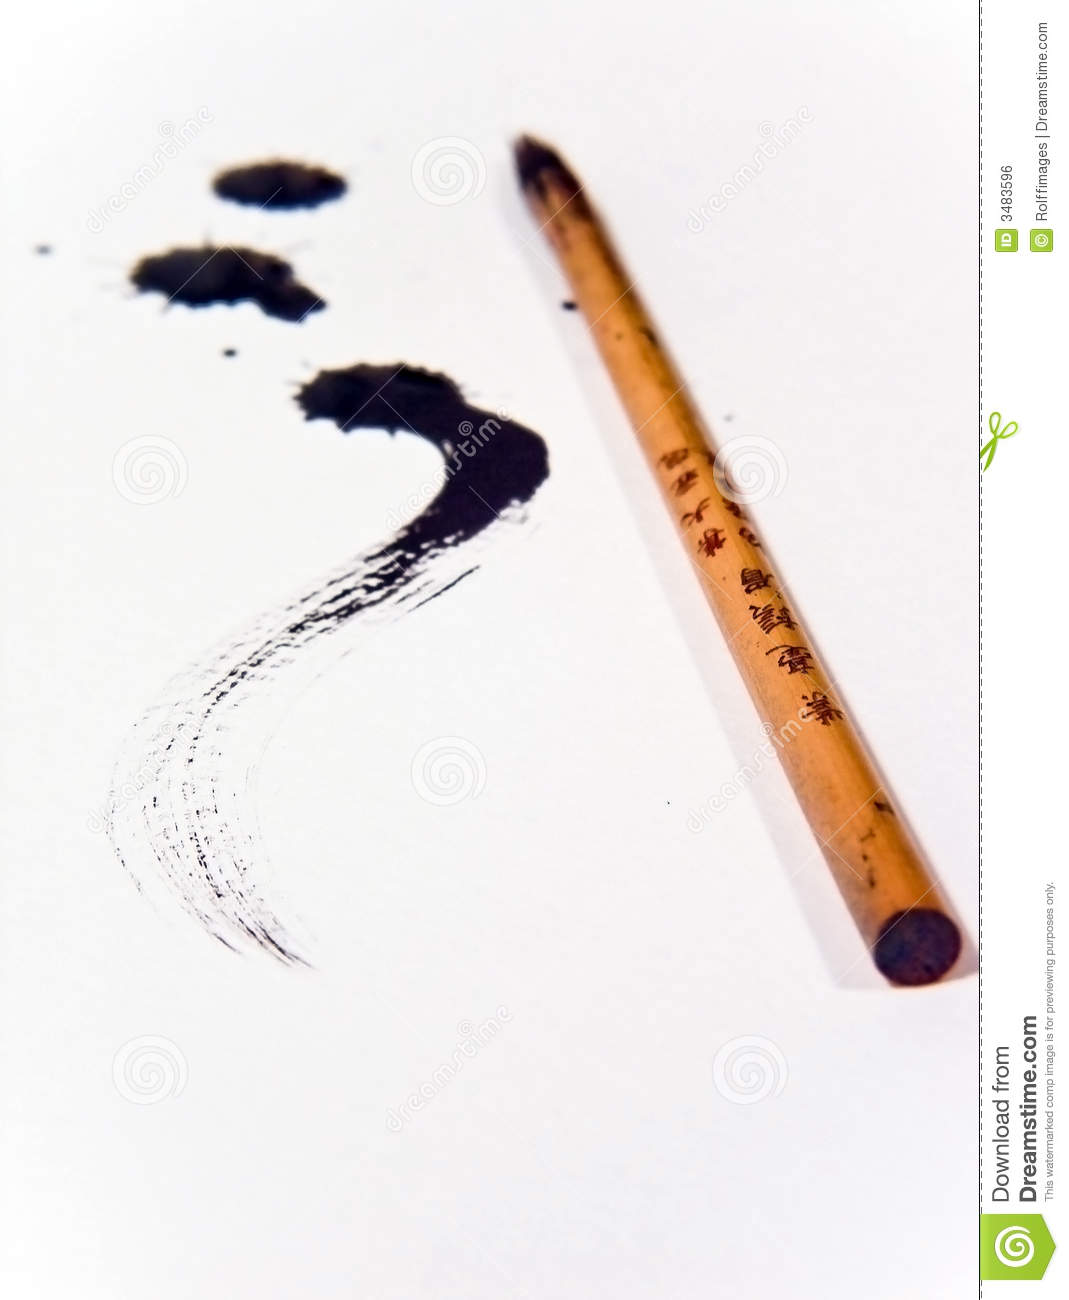 Chinese Ink Brush Royalty Free Stock Image - Image: 3483596